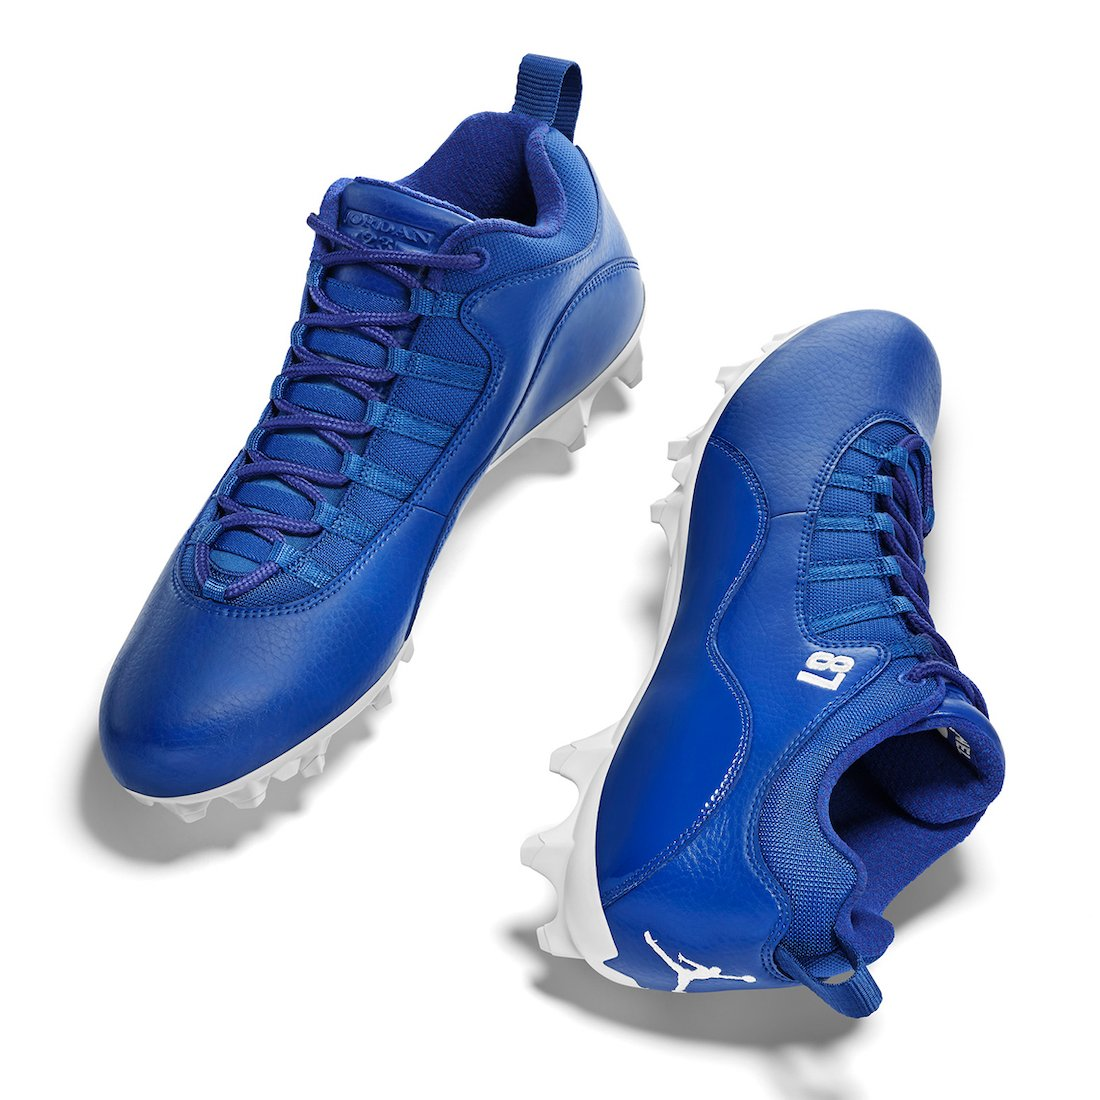 Stephon Glimore Air Jordan 10 NFL 2020 PE Cleats